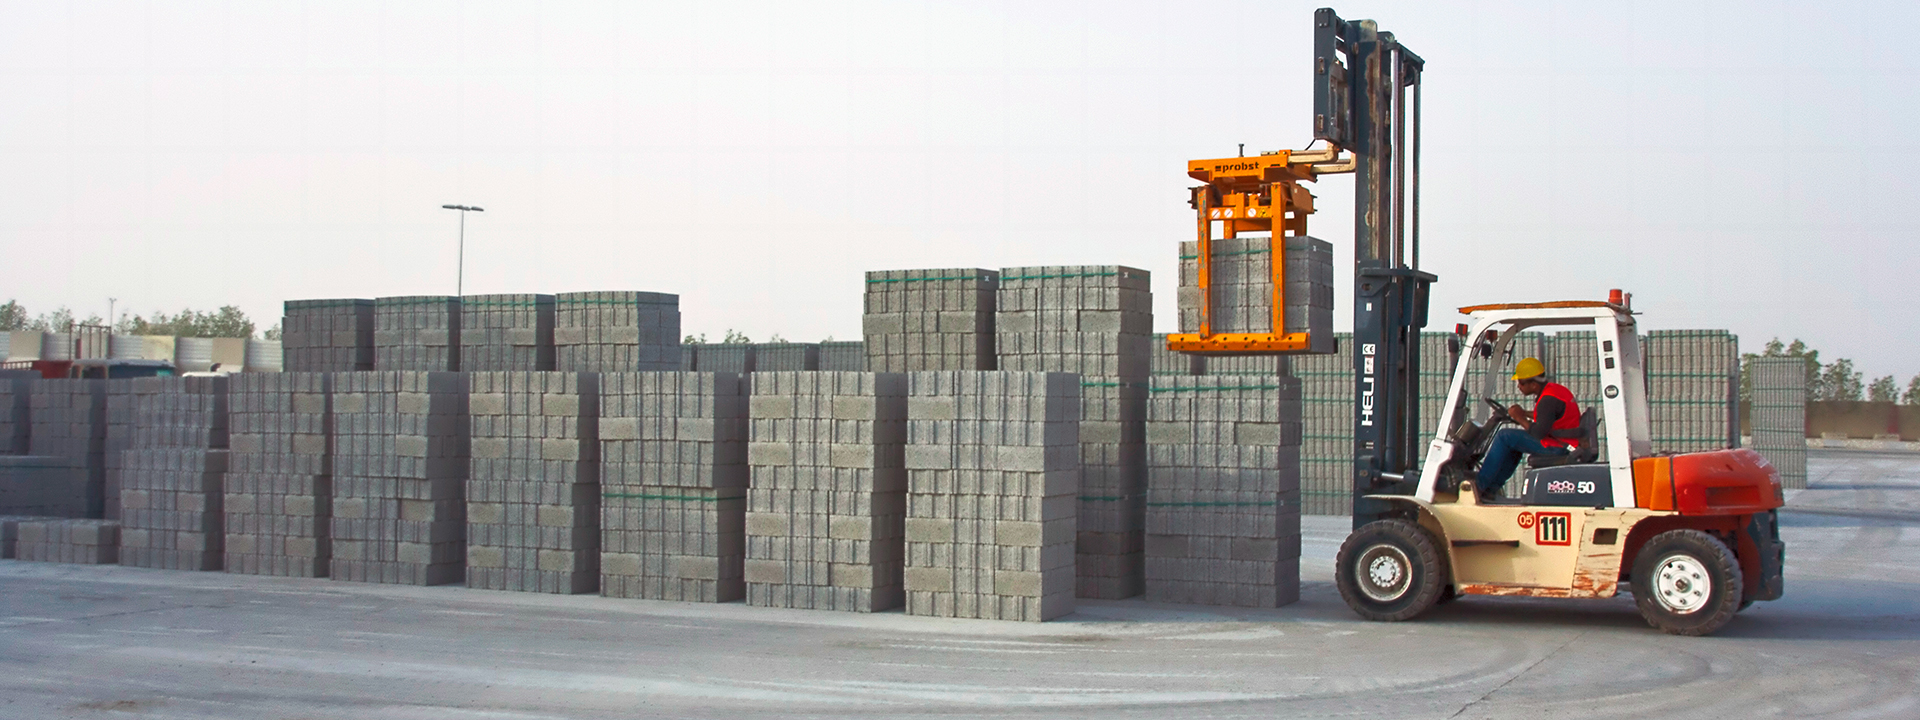 A forklift loading concrete breeze blocks.